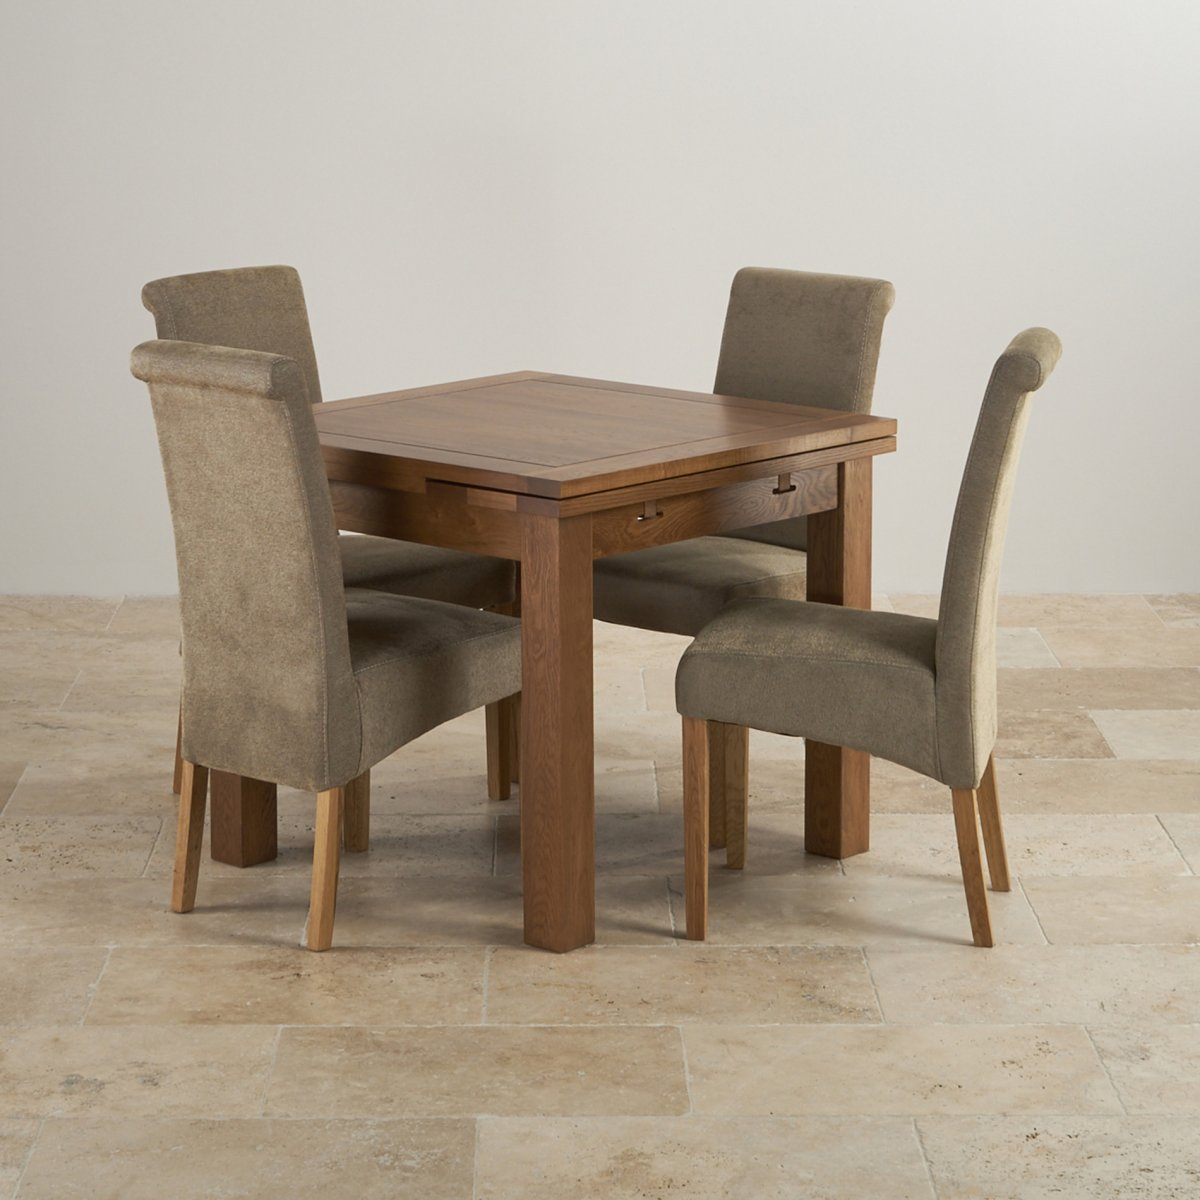 Rustic Dining Set In Real Oak: Extending Table + 4 Sage Chairs